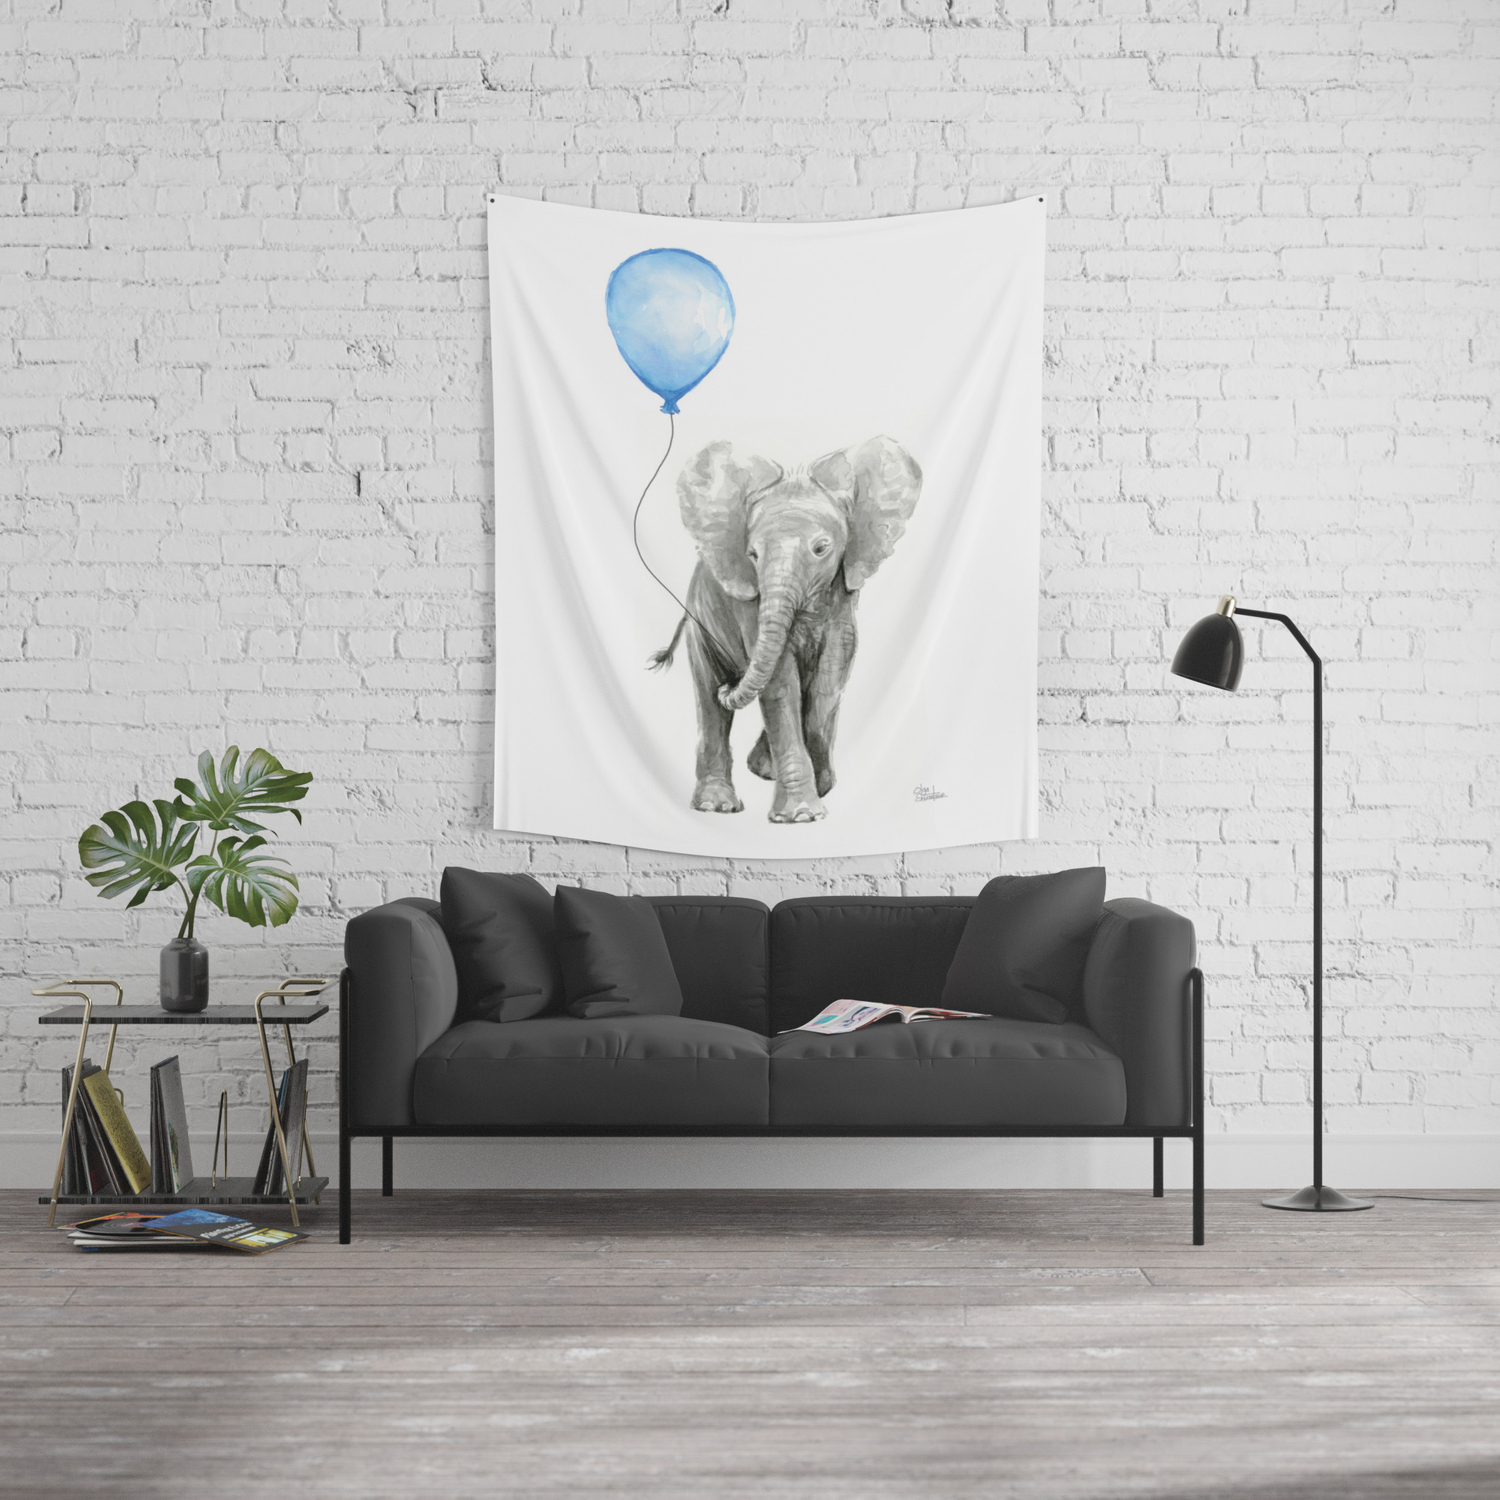 Baby Animal Elephant Watercolor Blue Balloon Baby Boy Nursery Room Decor  Wall Tapestry